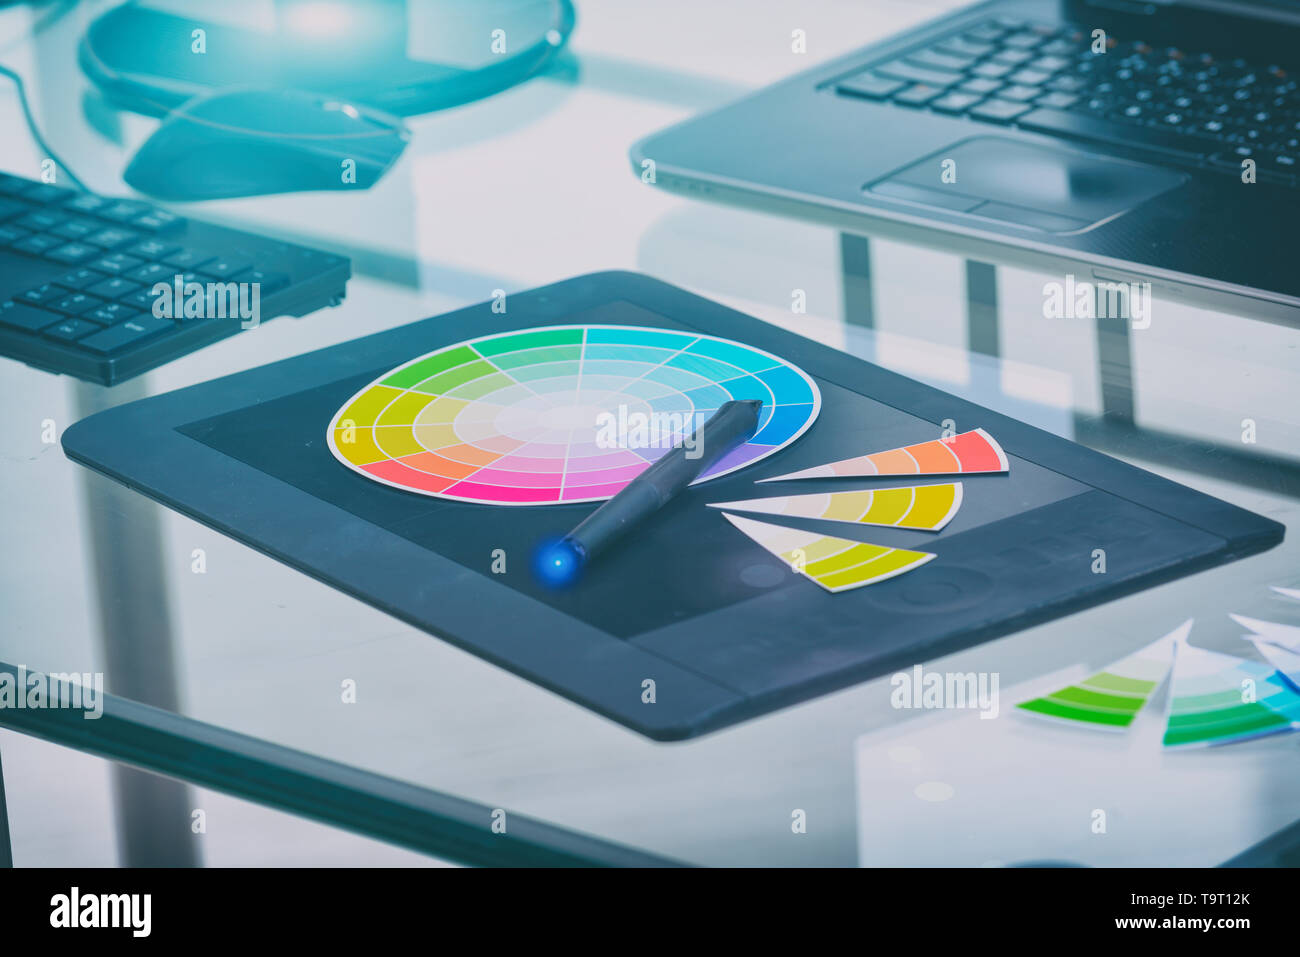 Designer tools used in office graphics tablet color wheel and computers Stock Photo